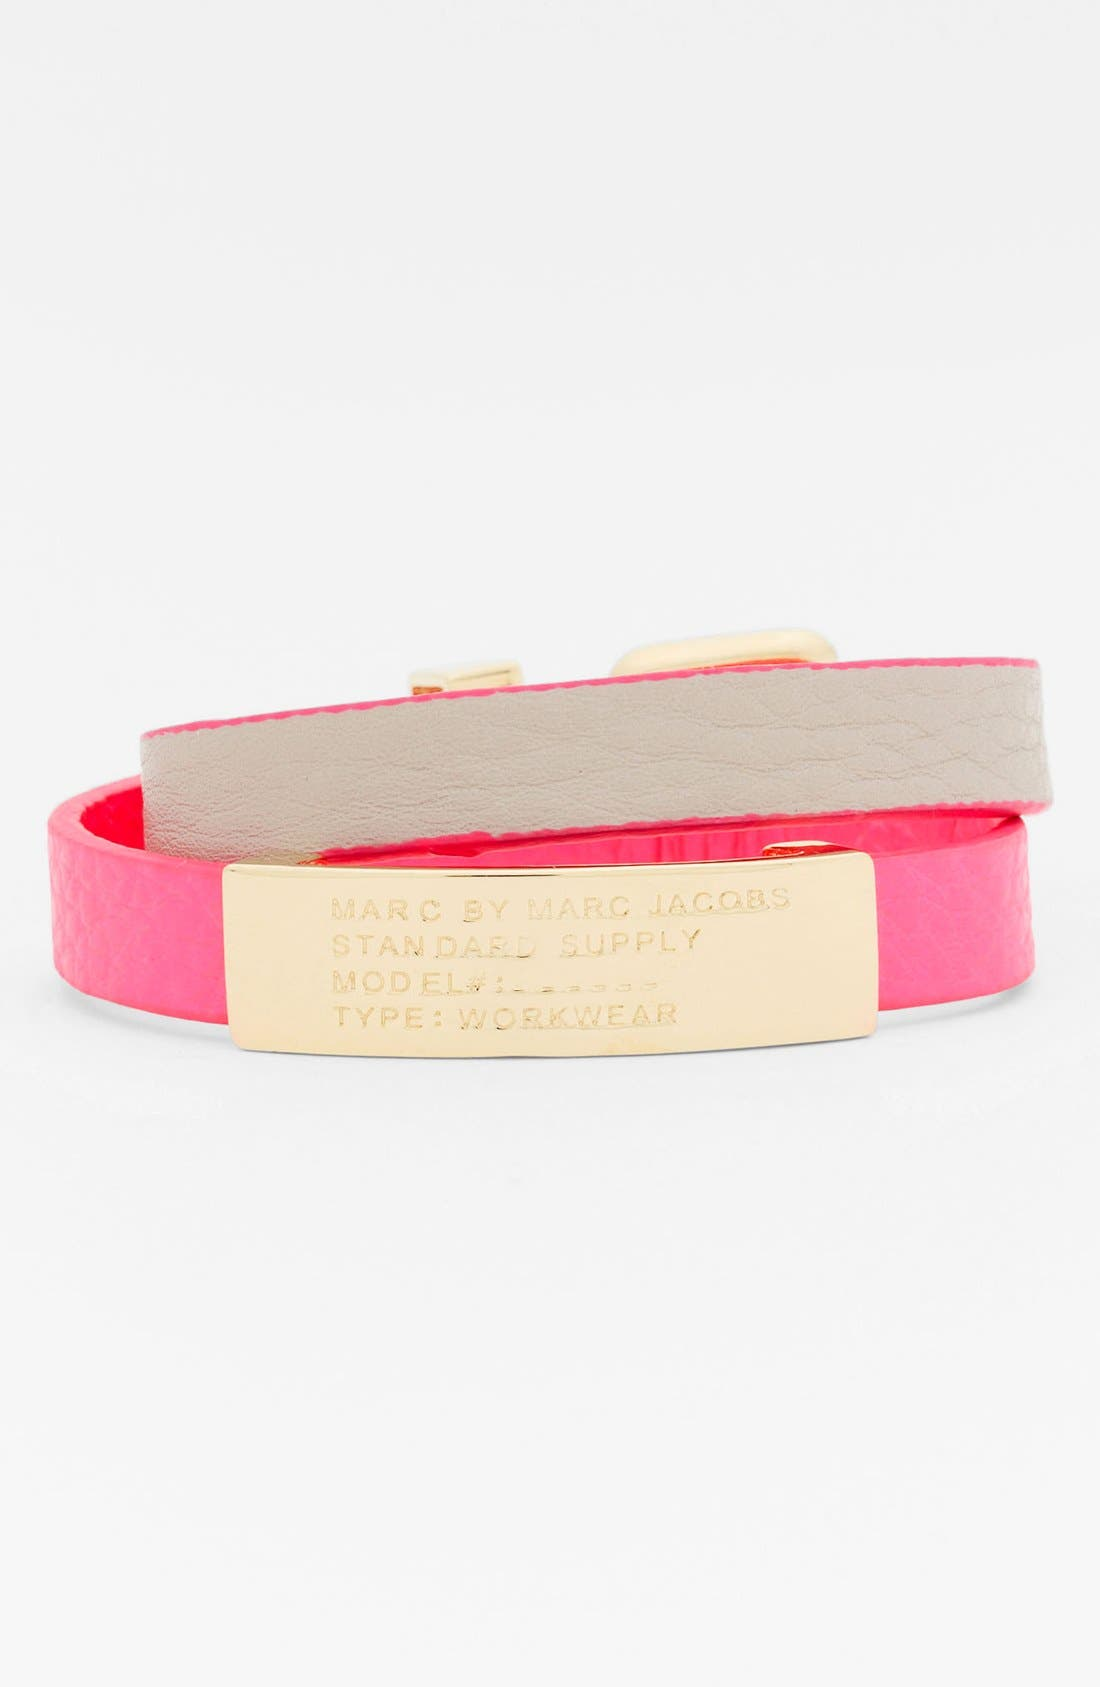 Alternate Image 1 Selected - MARC BY MARC JACOBS 'Standard Supply' Wrap ID Bracelet